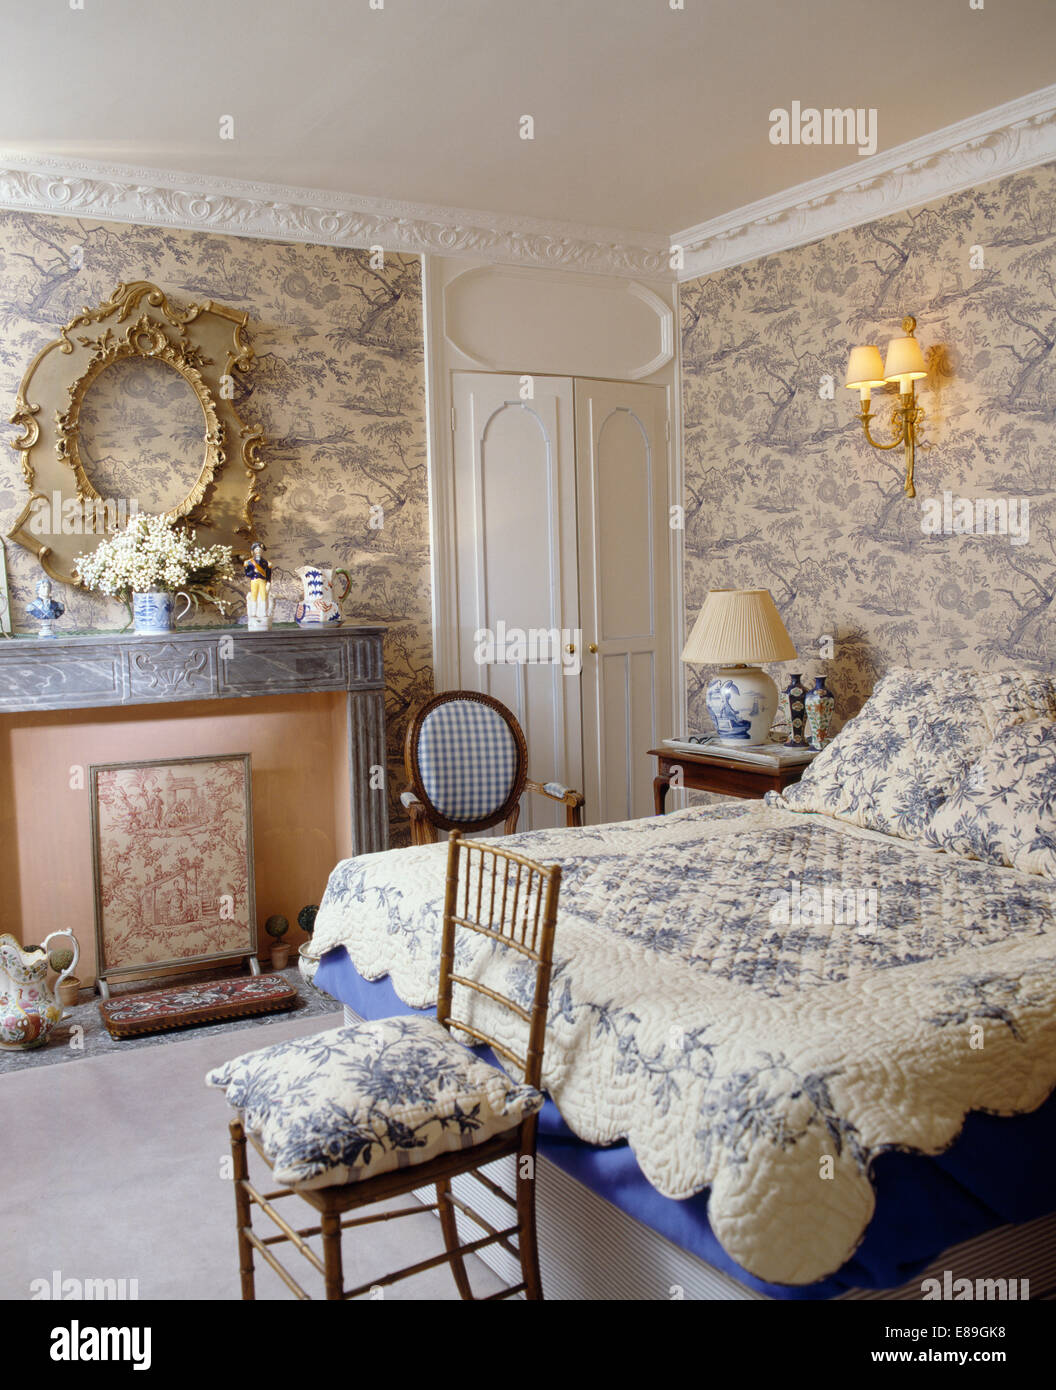 toile de jouy wallpaper in stockfotos toile de jouy wallpaper in bilder alamy. Black Bedroom Furniture Sets. Home Design Ideas